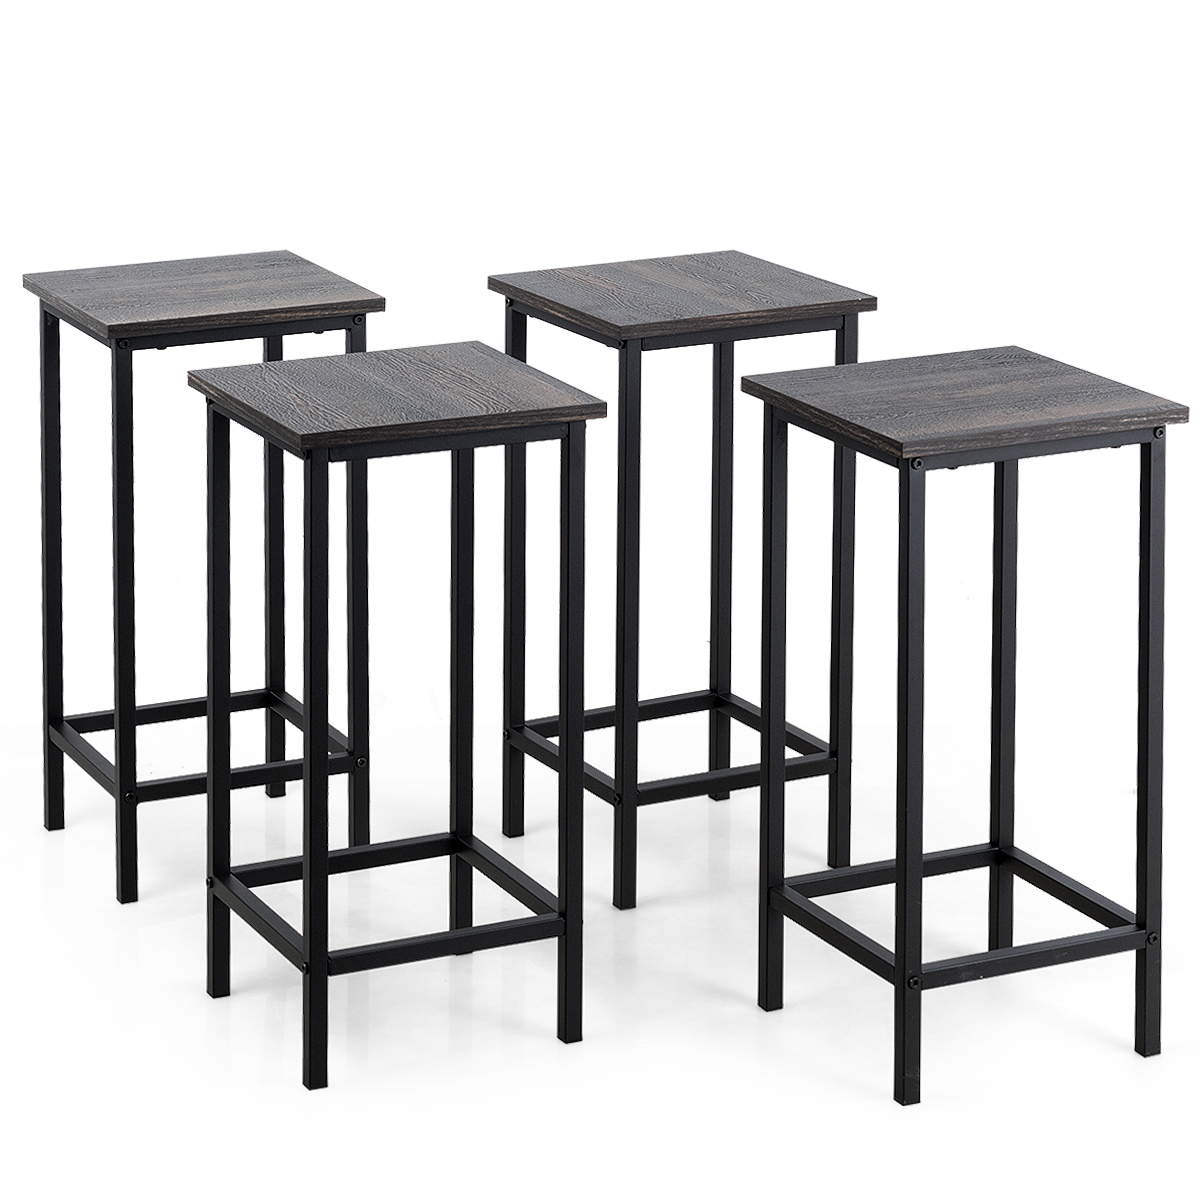 Costway Set Of 4 Bar Stools 24'' Counter Height Backless Dining Stools